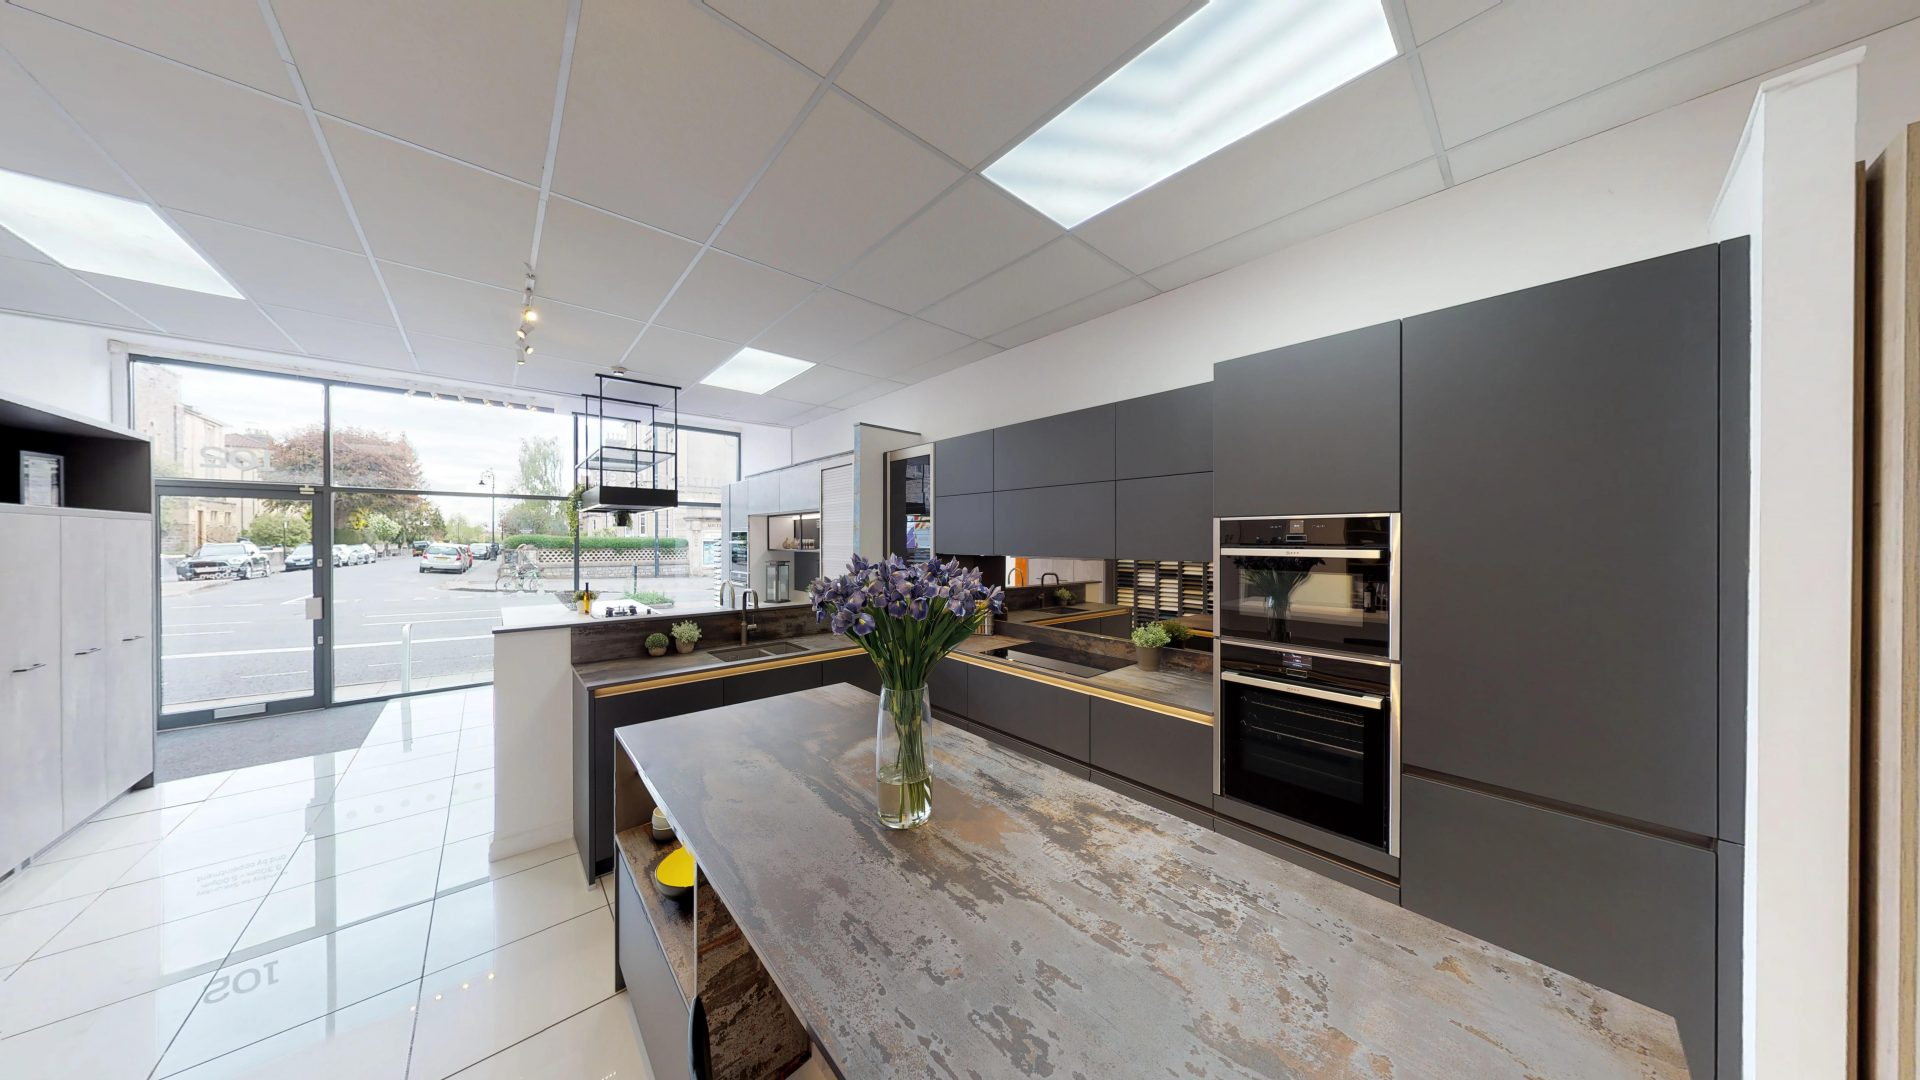 The-Kitchen-Partners-04292019_150529